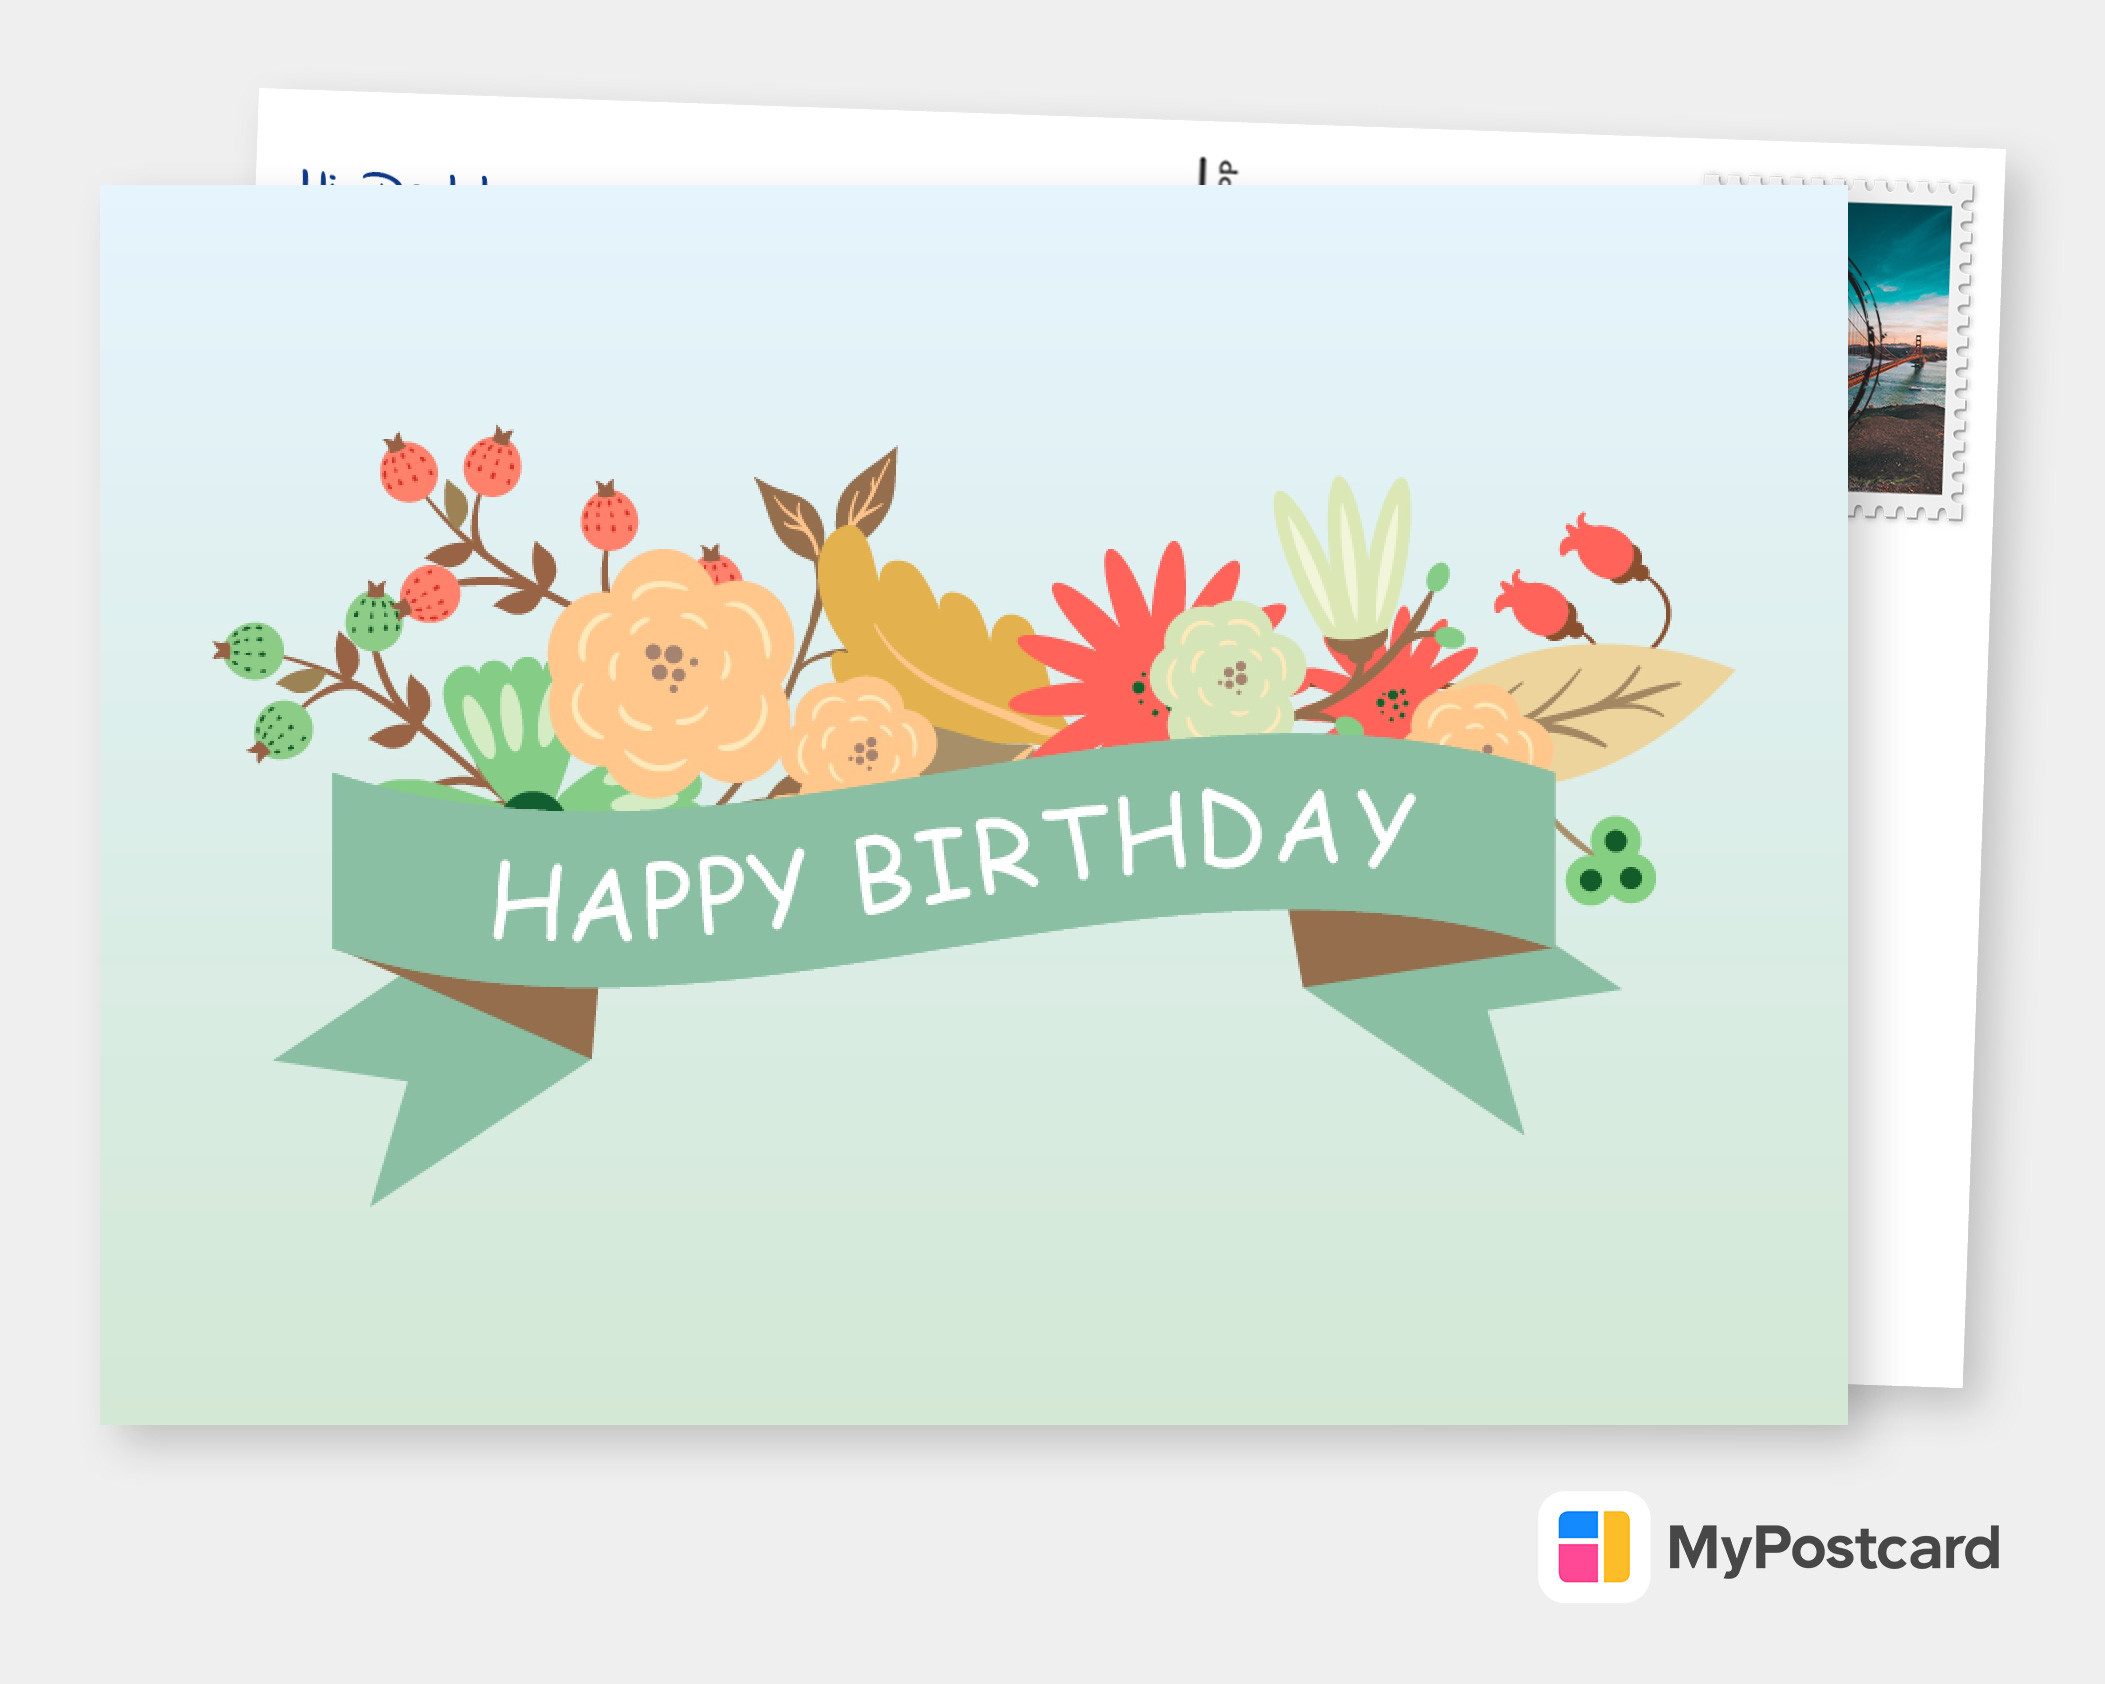 Create Your Own Happy Birthday Cards  Free Printable Templates  Printed &  Mailed For You  Photo Cards, Photo Postcards, Greeting Cards Online,